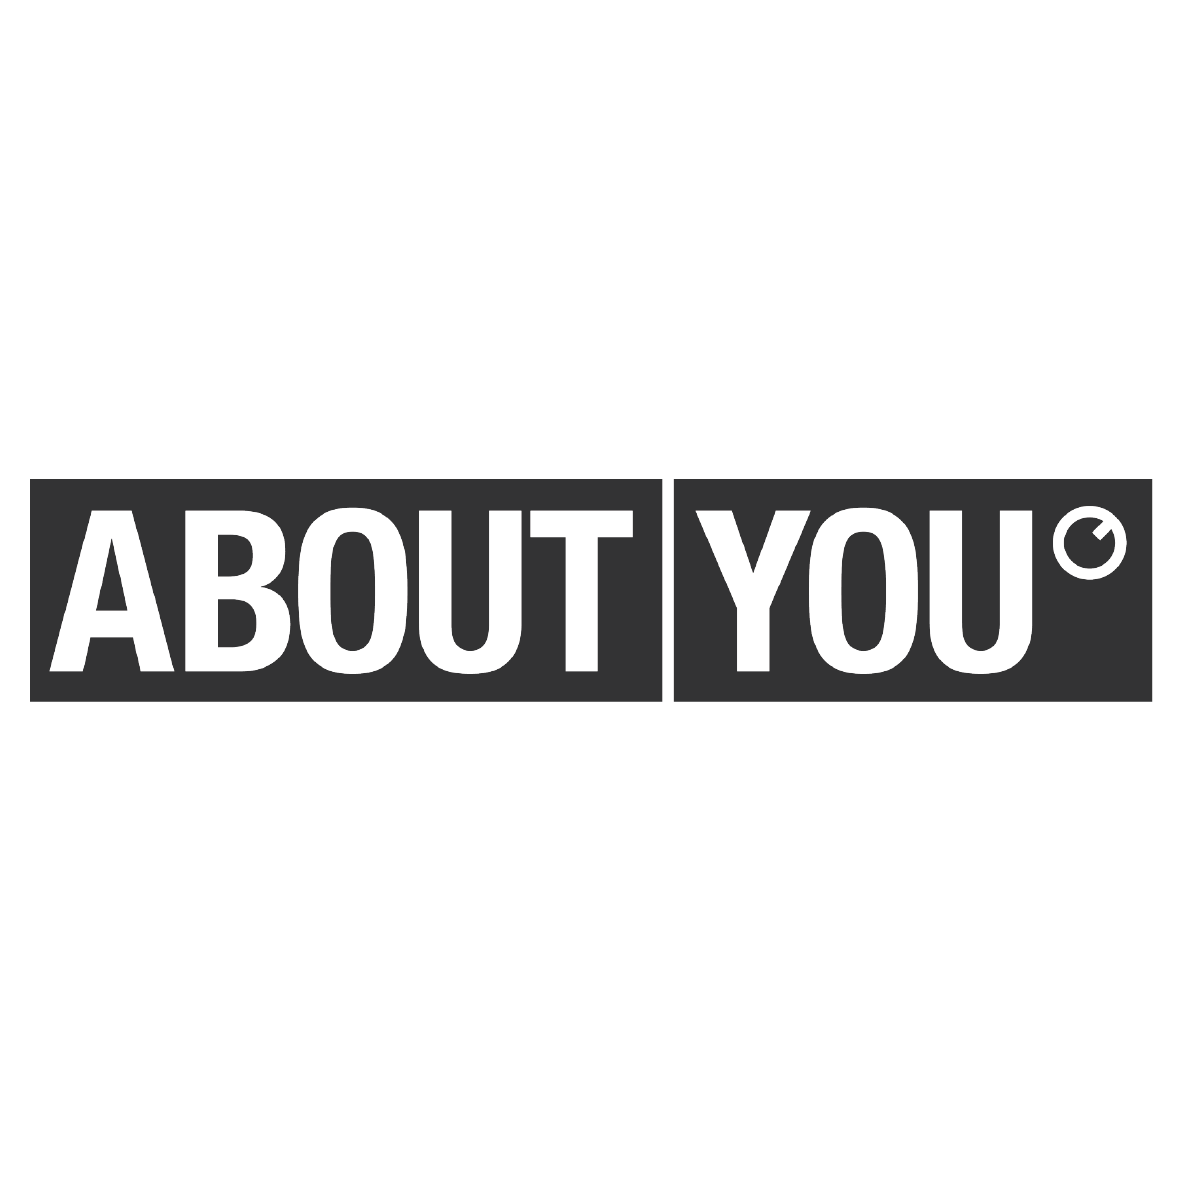 Logo AboutYou_#US_Brands